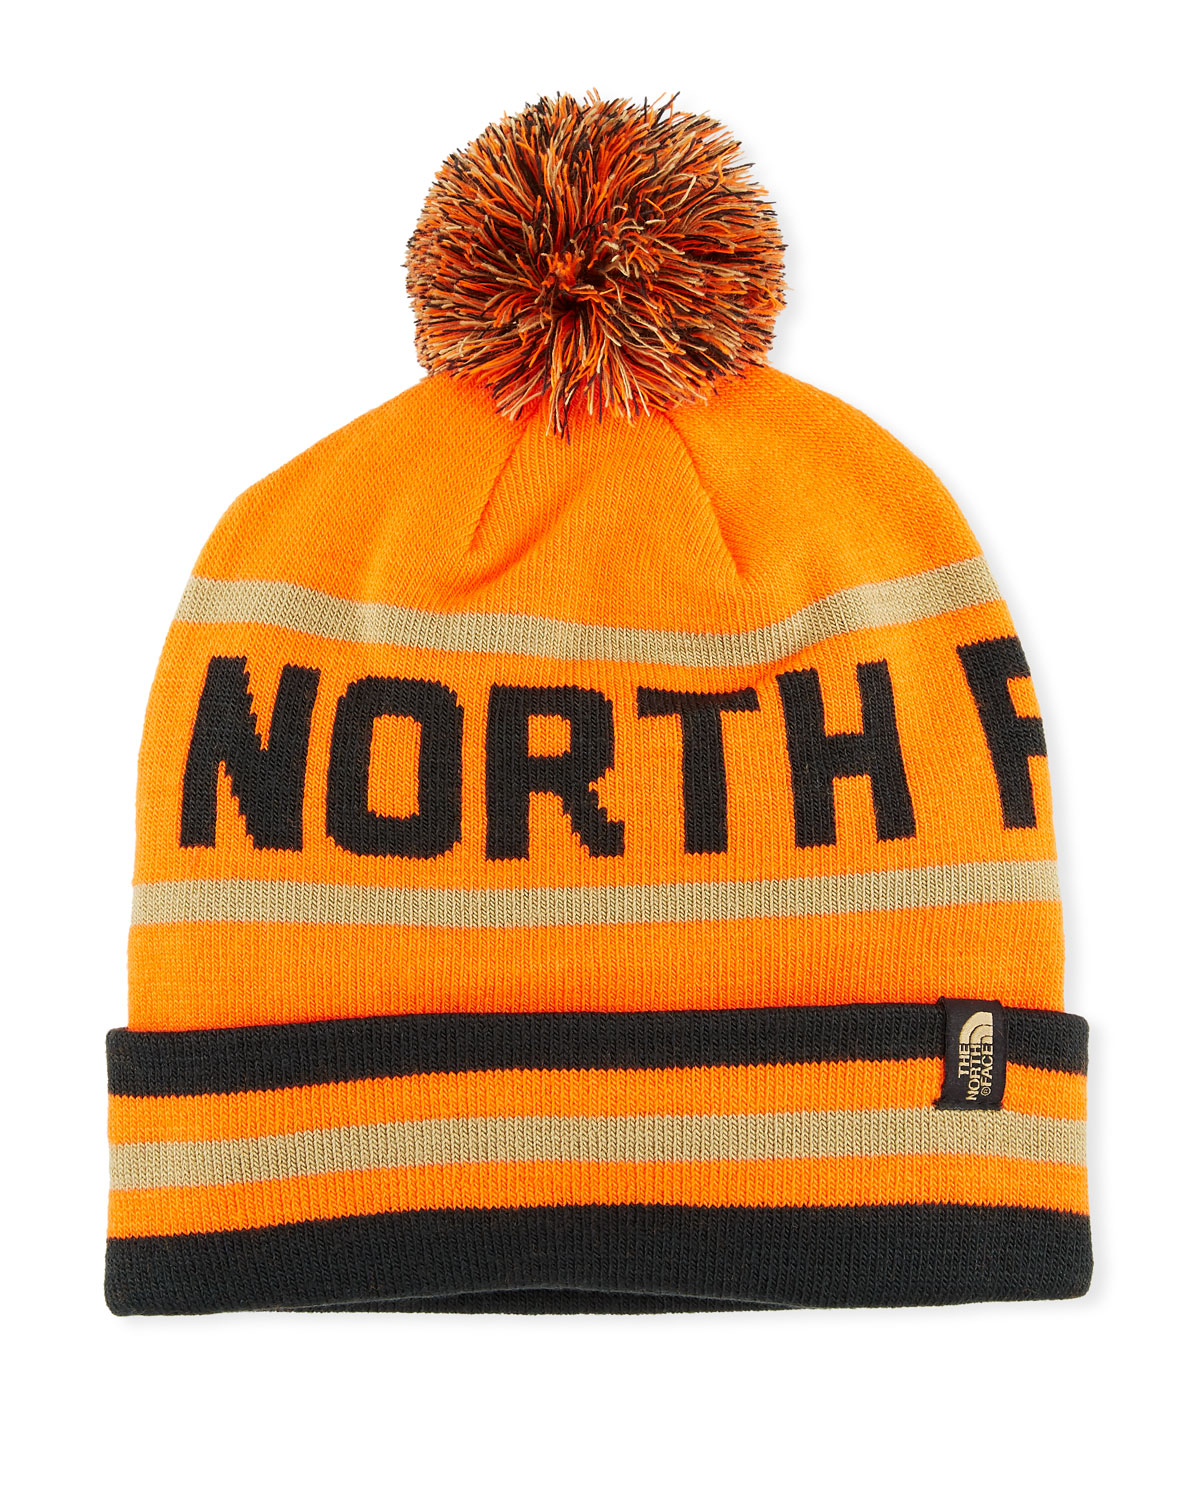 cc3b0ac82b0 The North Face Men s Logo Ski Toque Beanie Hat with Pompom